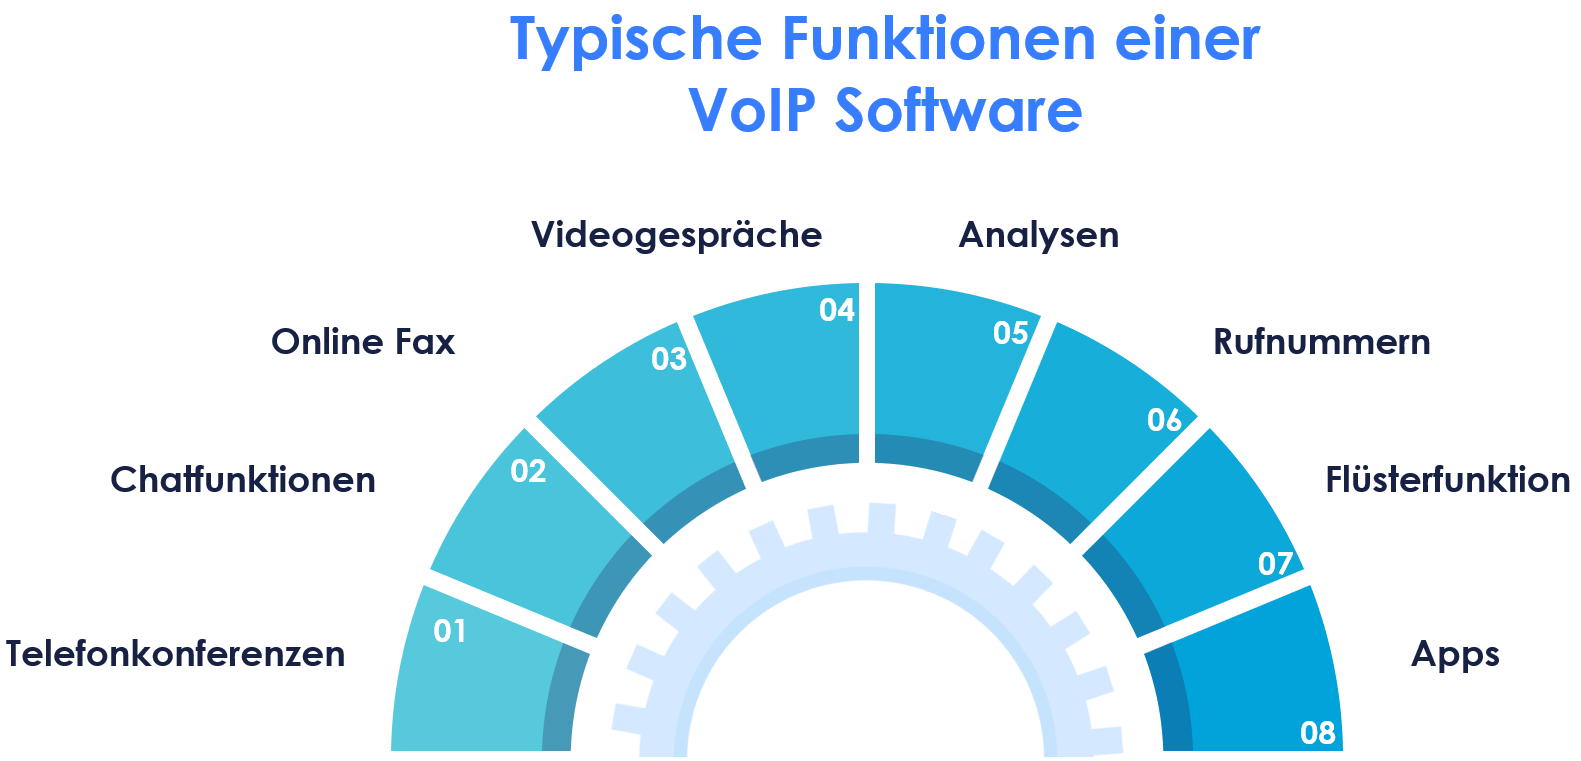 Darstellung - Funktionen VoIP Software